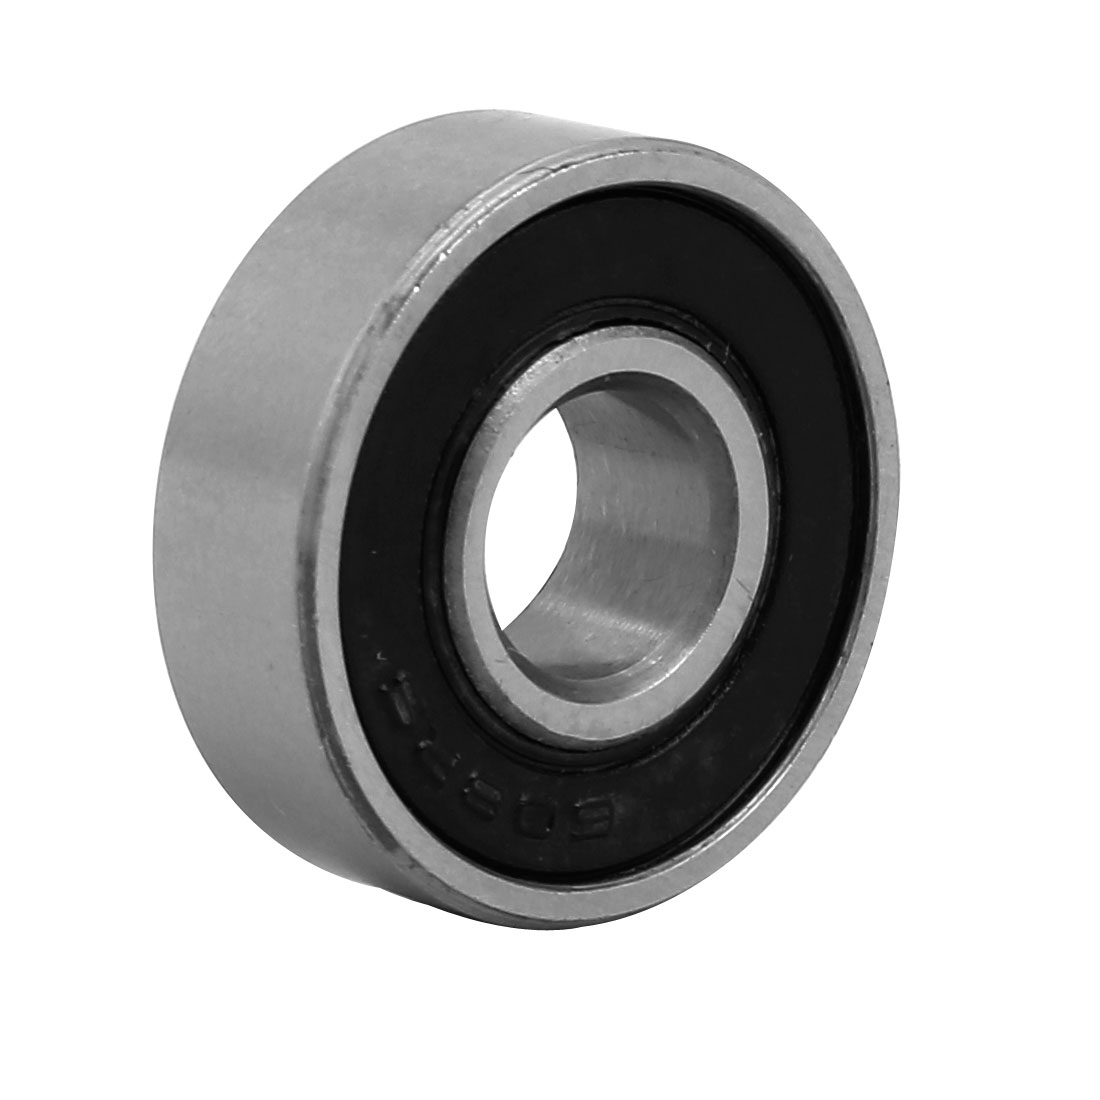 22mmx8mm Stainless Steel Double Sealed Deep Groove Ball Bearing Silver Tone 3pcs - image 3 of 4